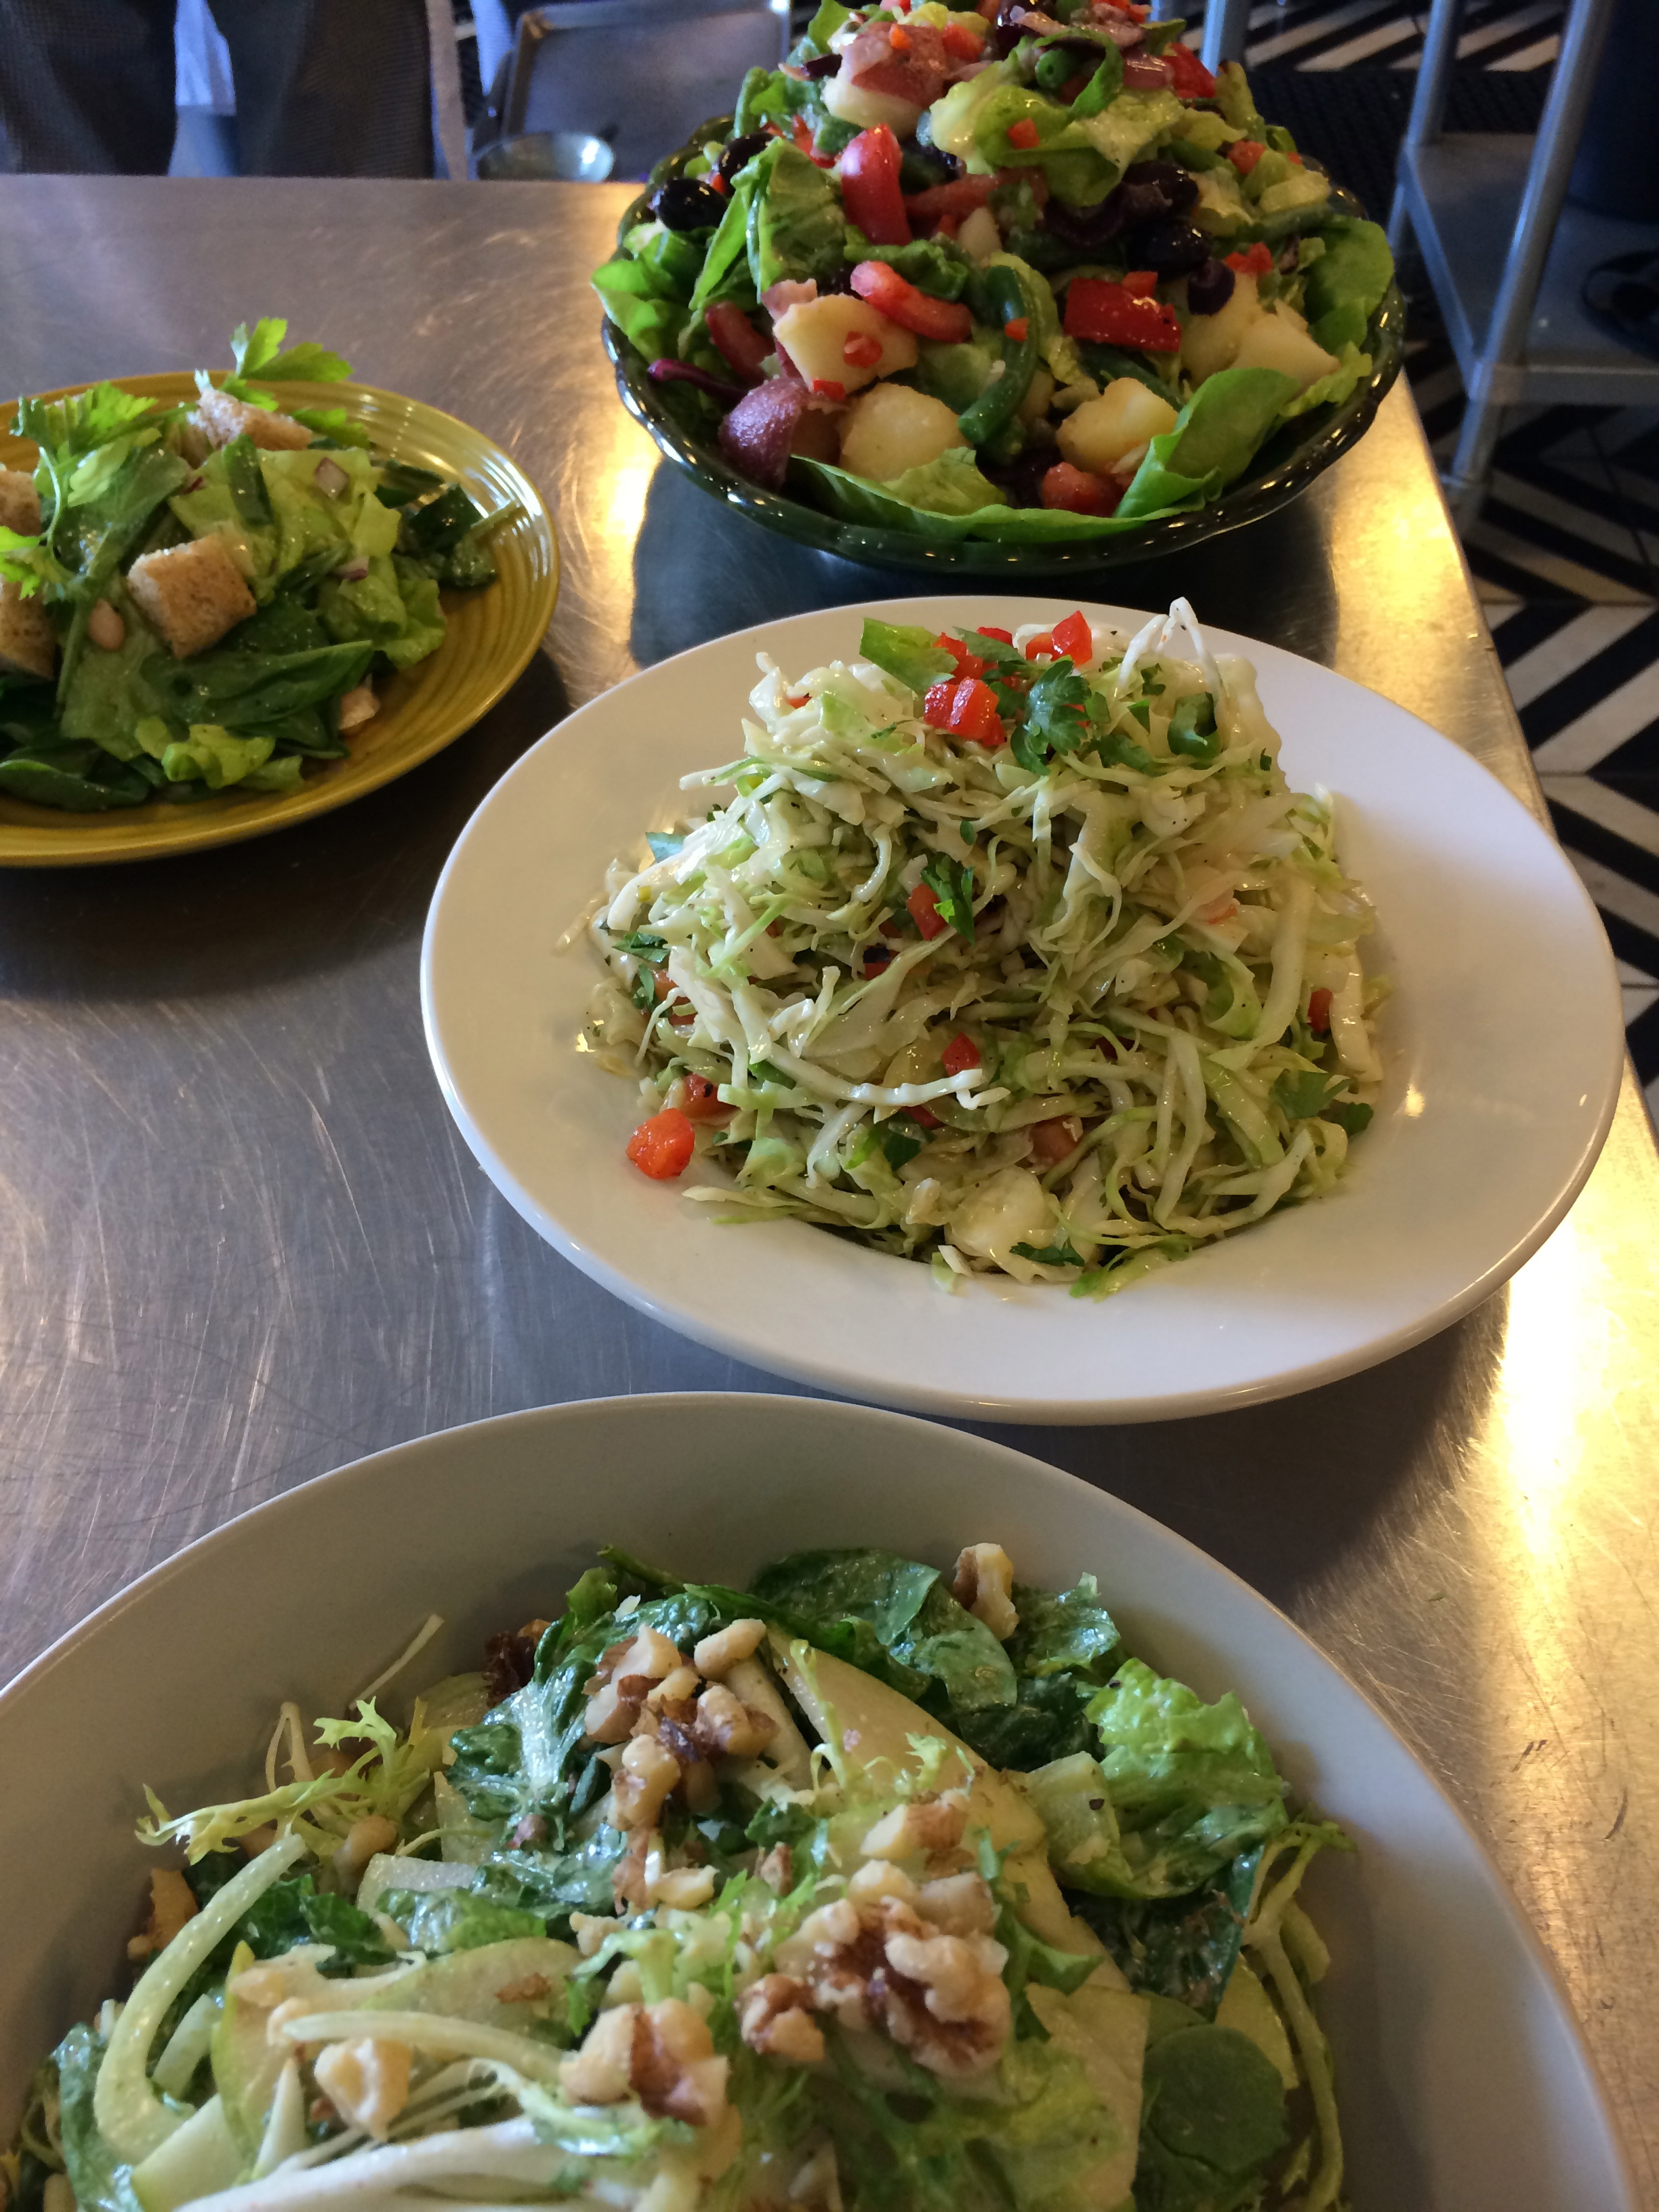 Salad day at school, coleslaw in the middle….